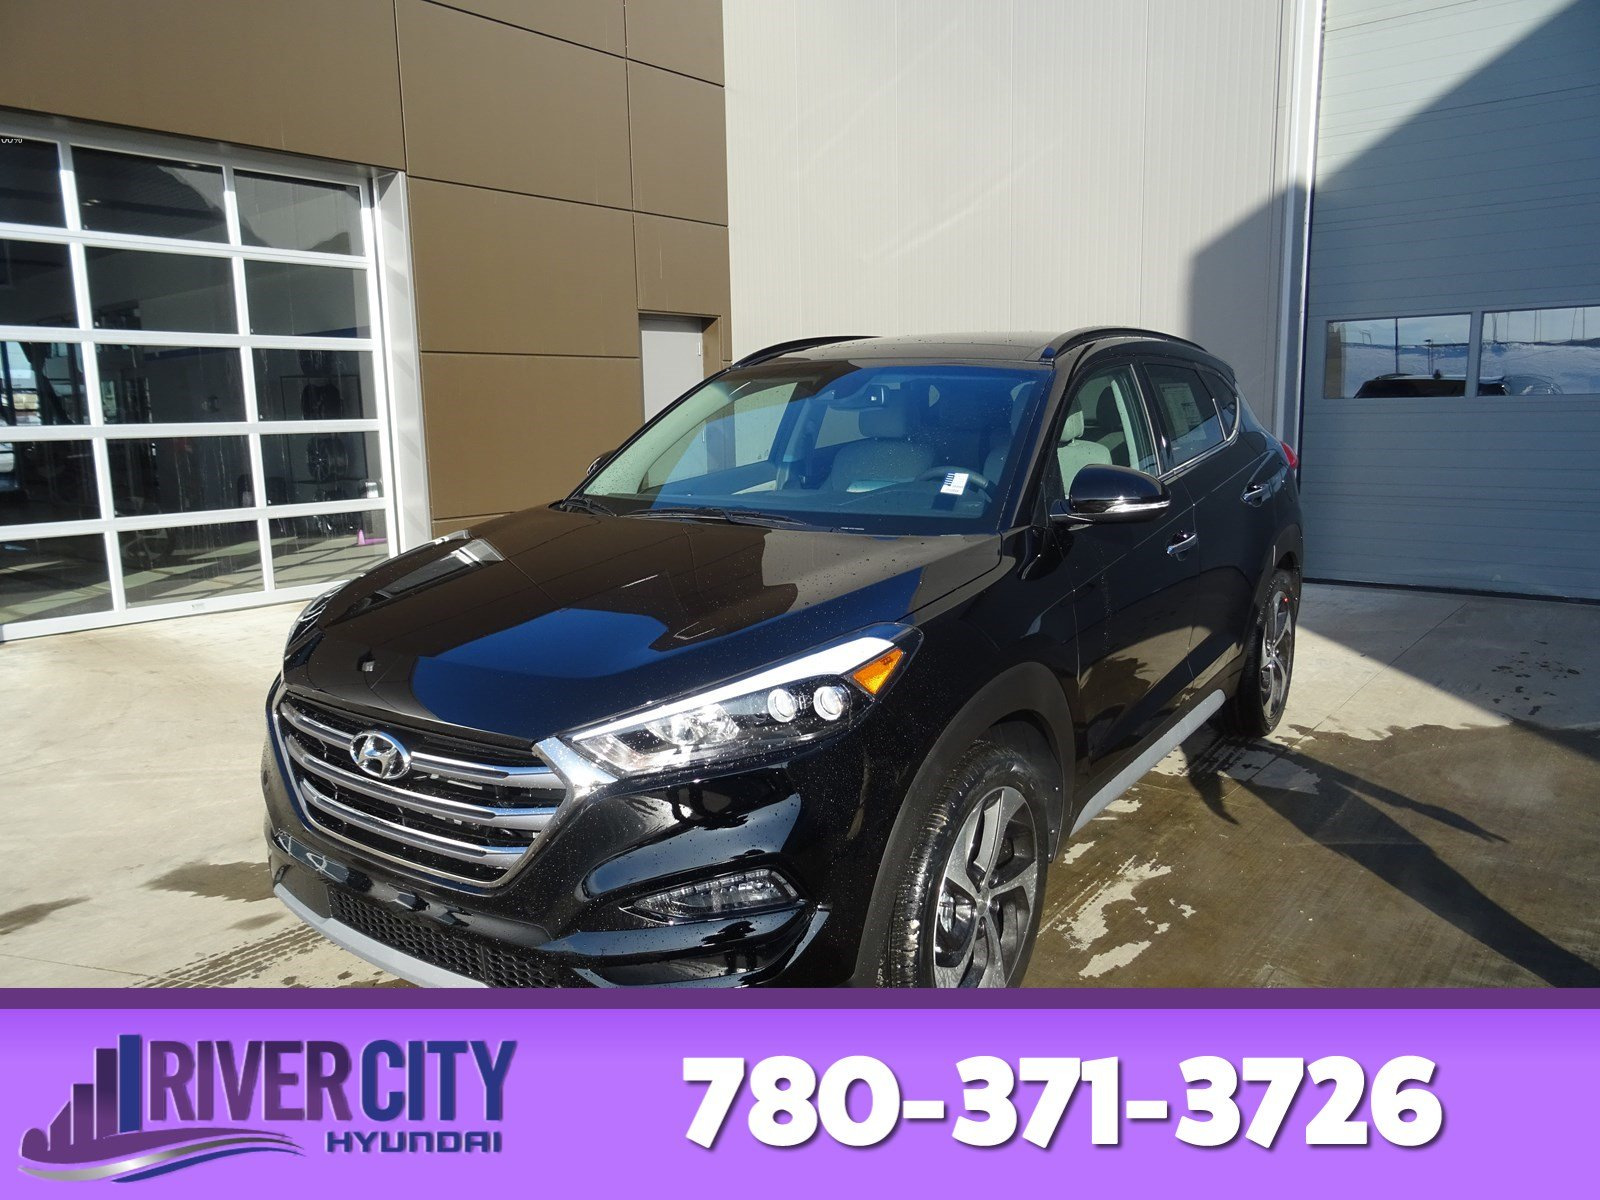 show hyundai cars here the for tuscan redesign tucson motor money redesigned exterior story geneva is